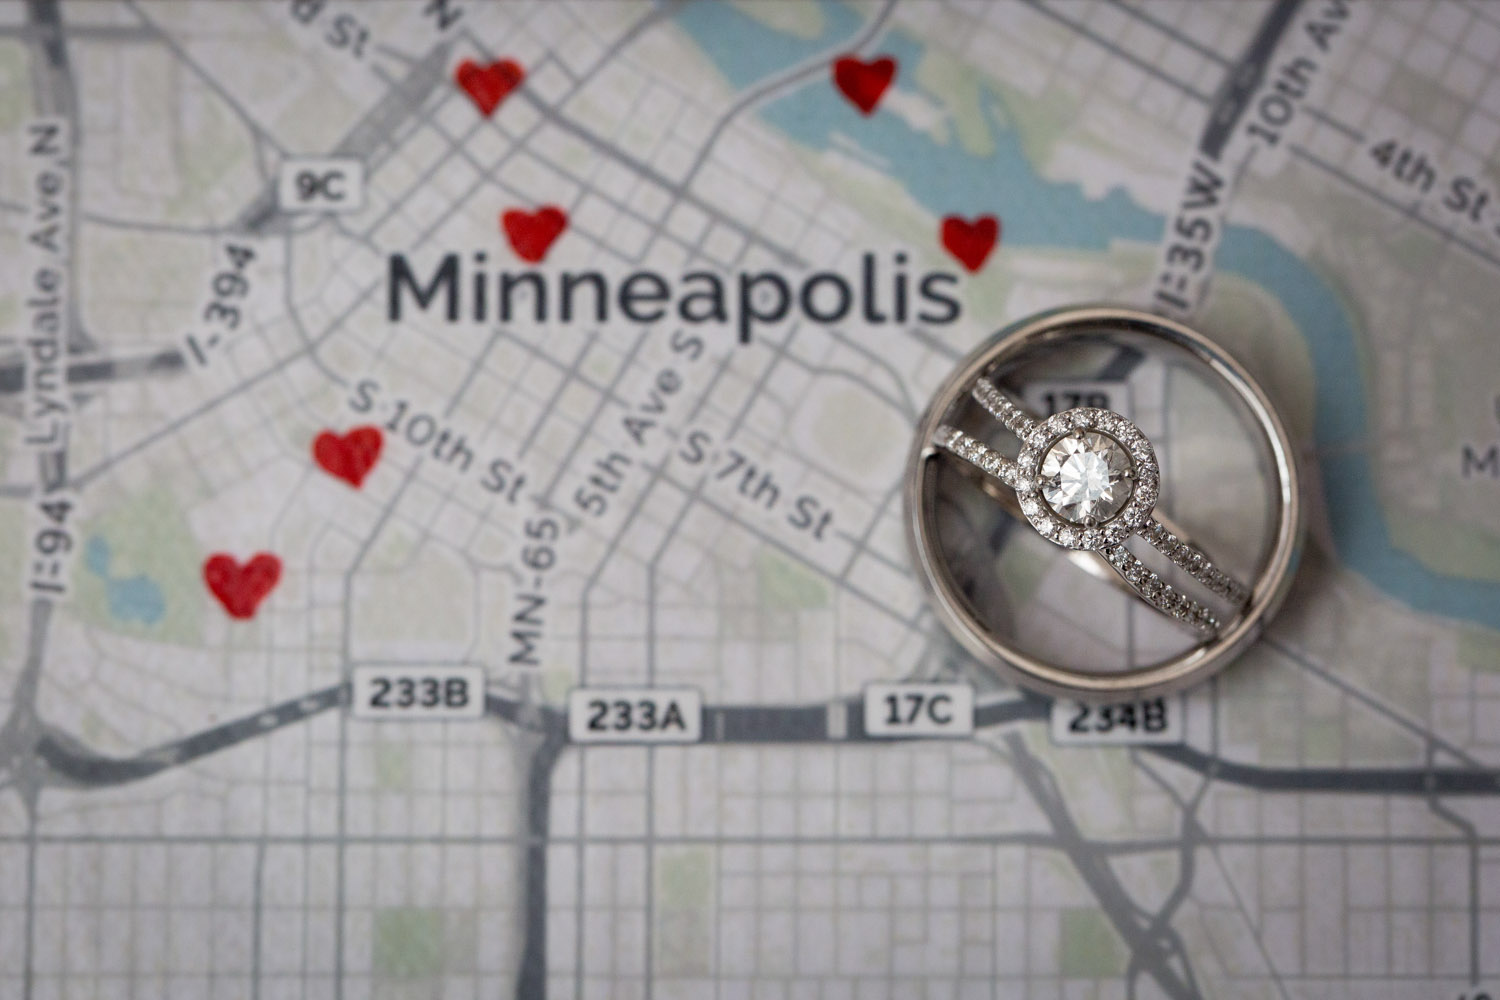 09-central-lutheran-church-downtown-minneapolis-mn-weddings-macro-rings-detail-map-mahonenphotography.jpg